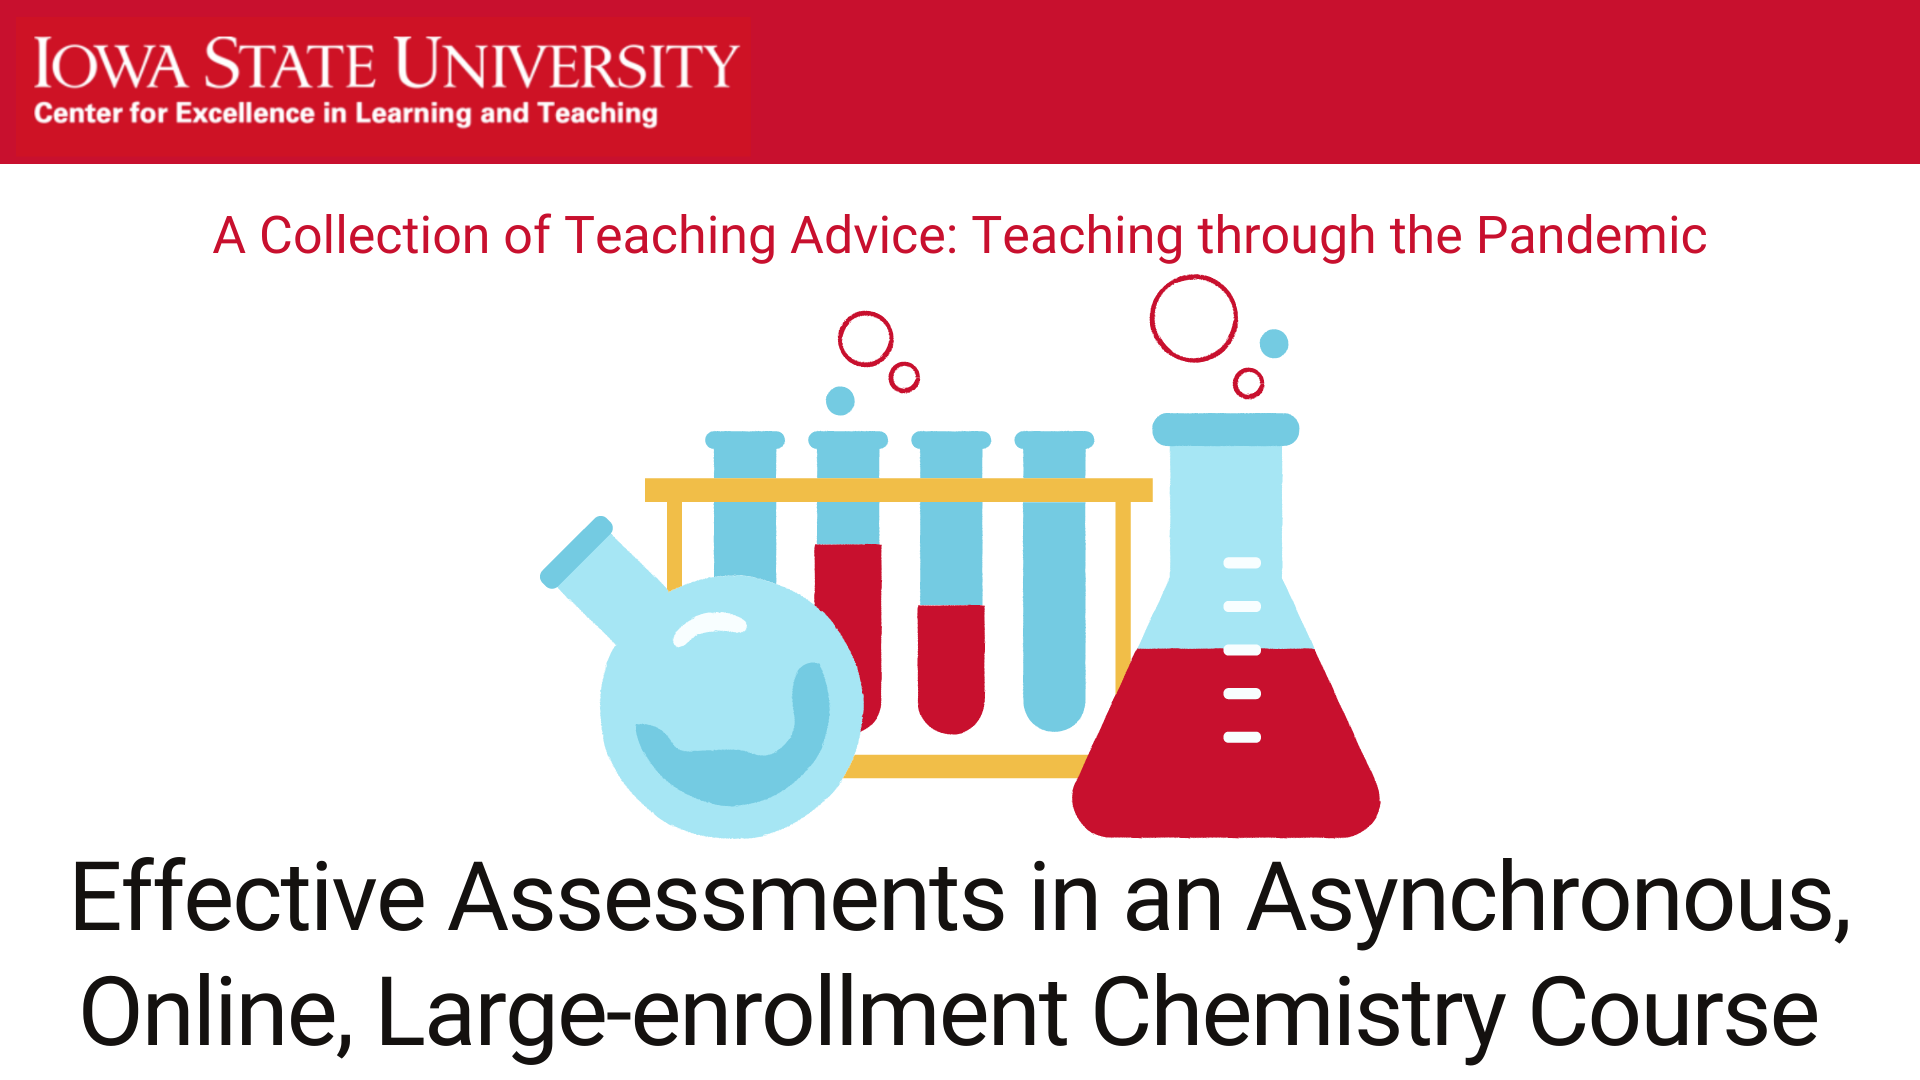 Effective assessments in an asynchronous, online, large-enrollment chemistry course